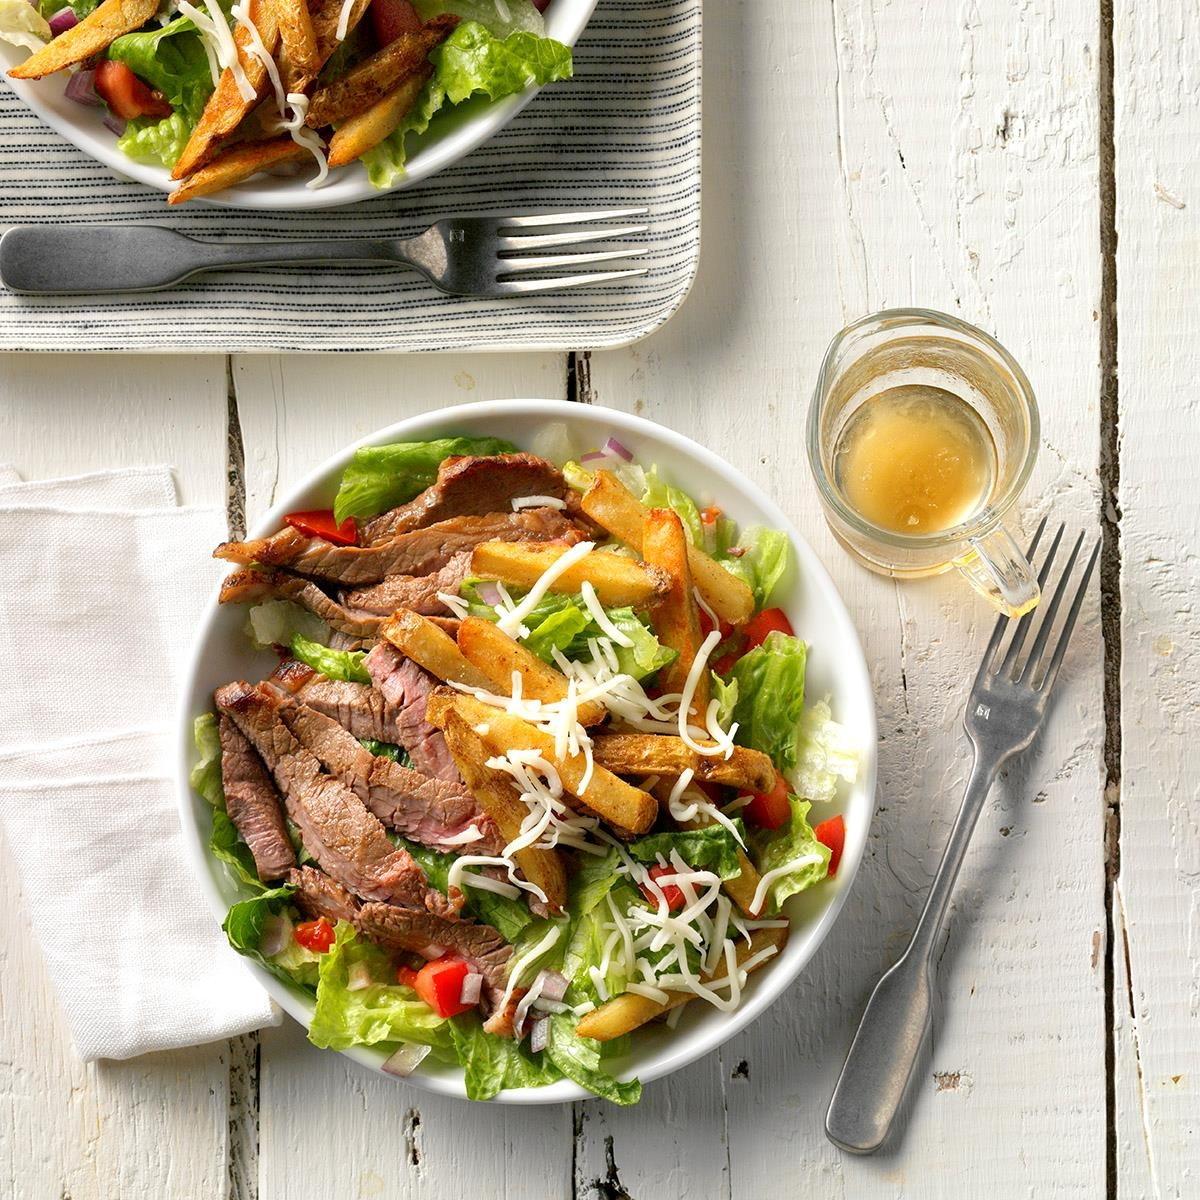 Day 1 Dinner: Steak 'n' Fries Salad